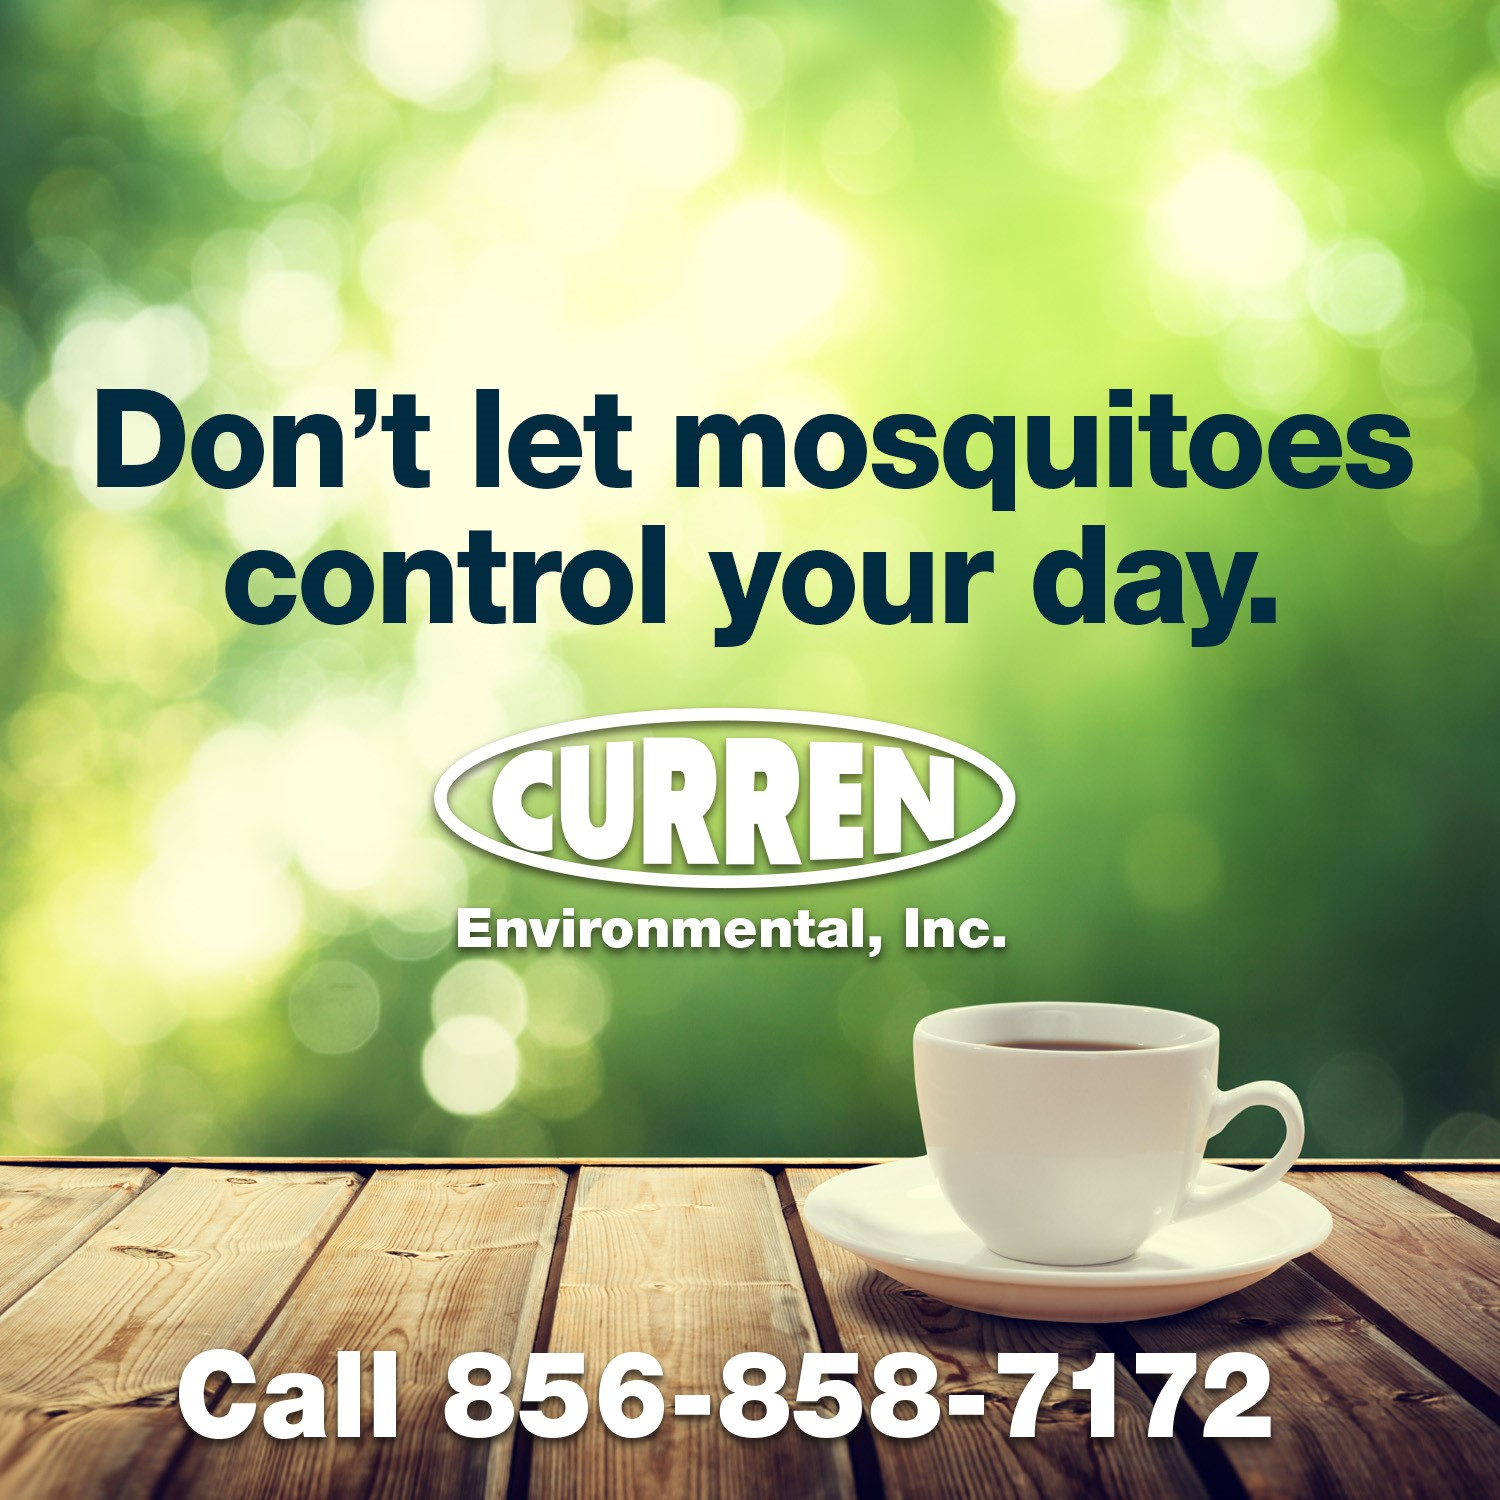 mosquito control service for your yard